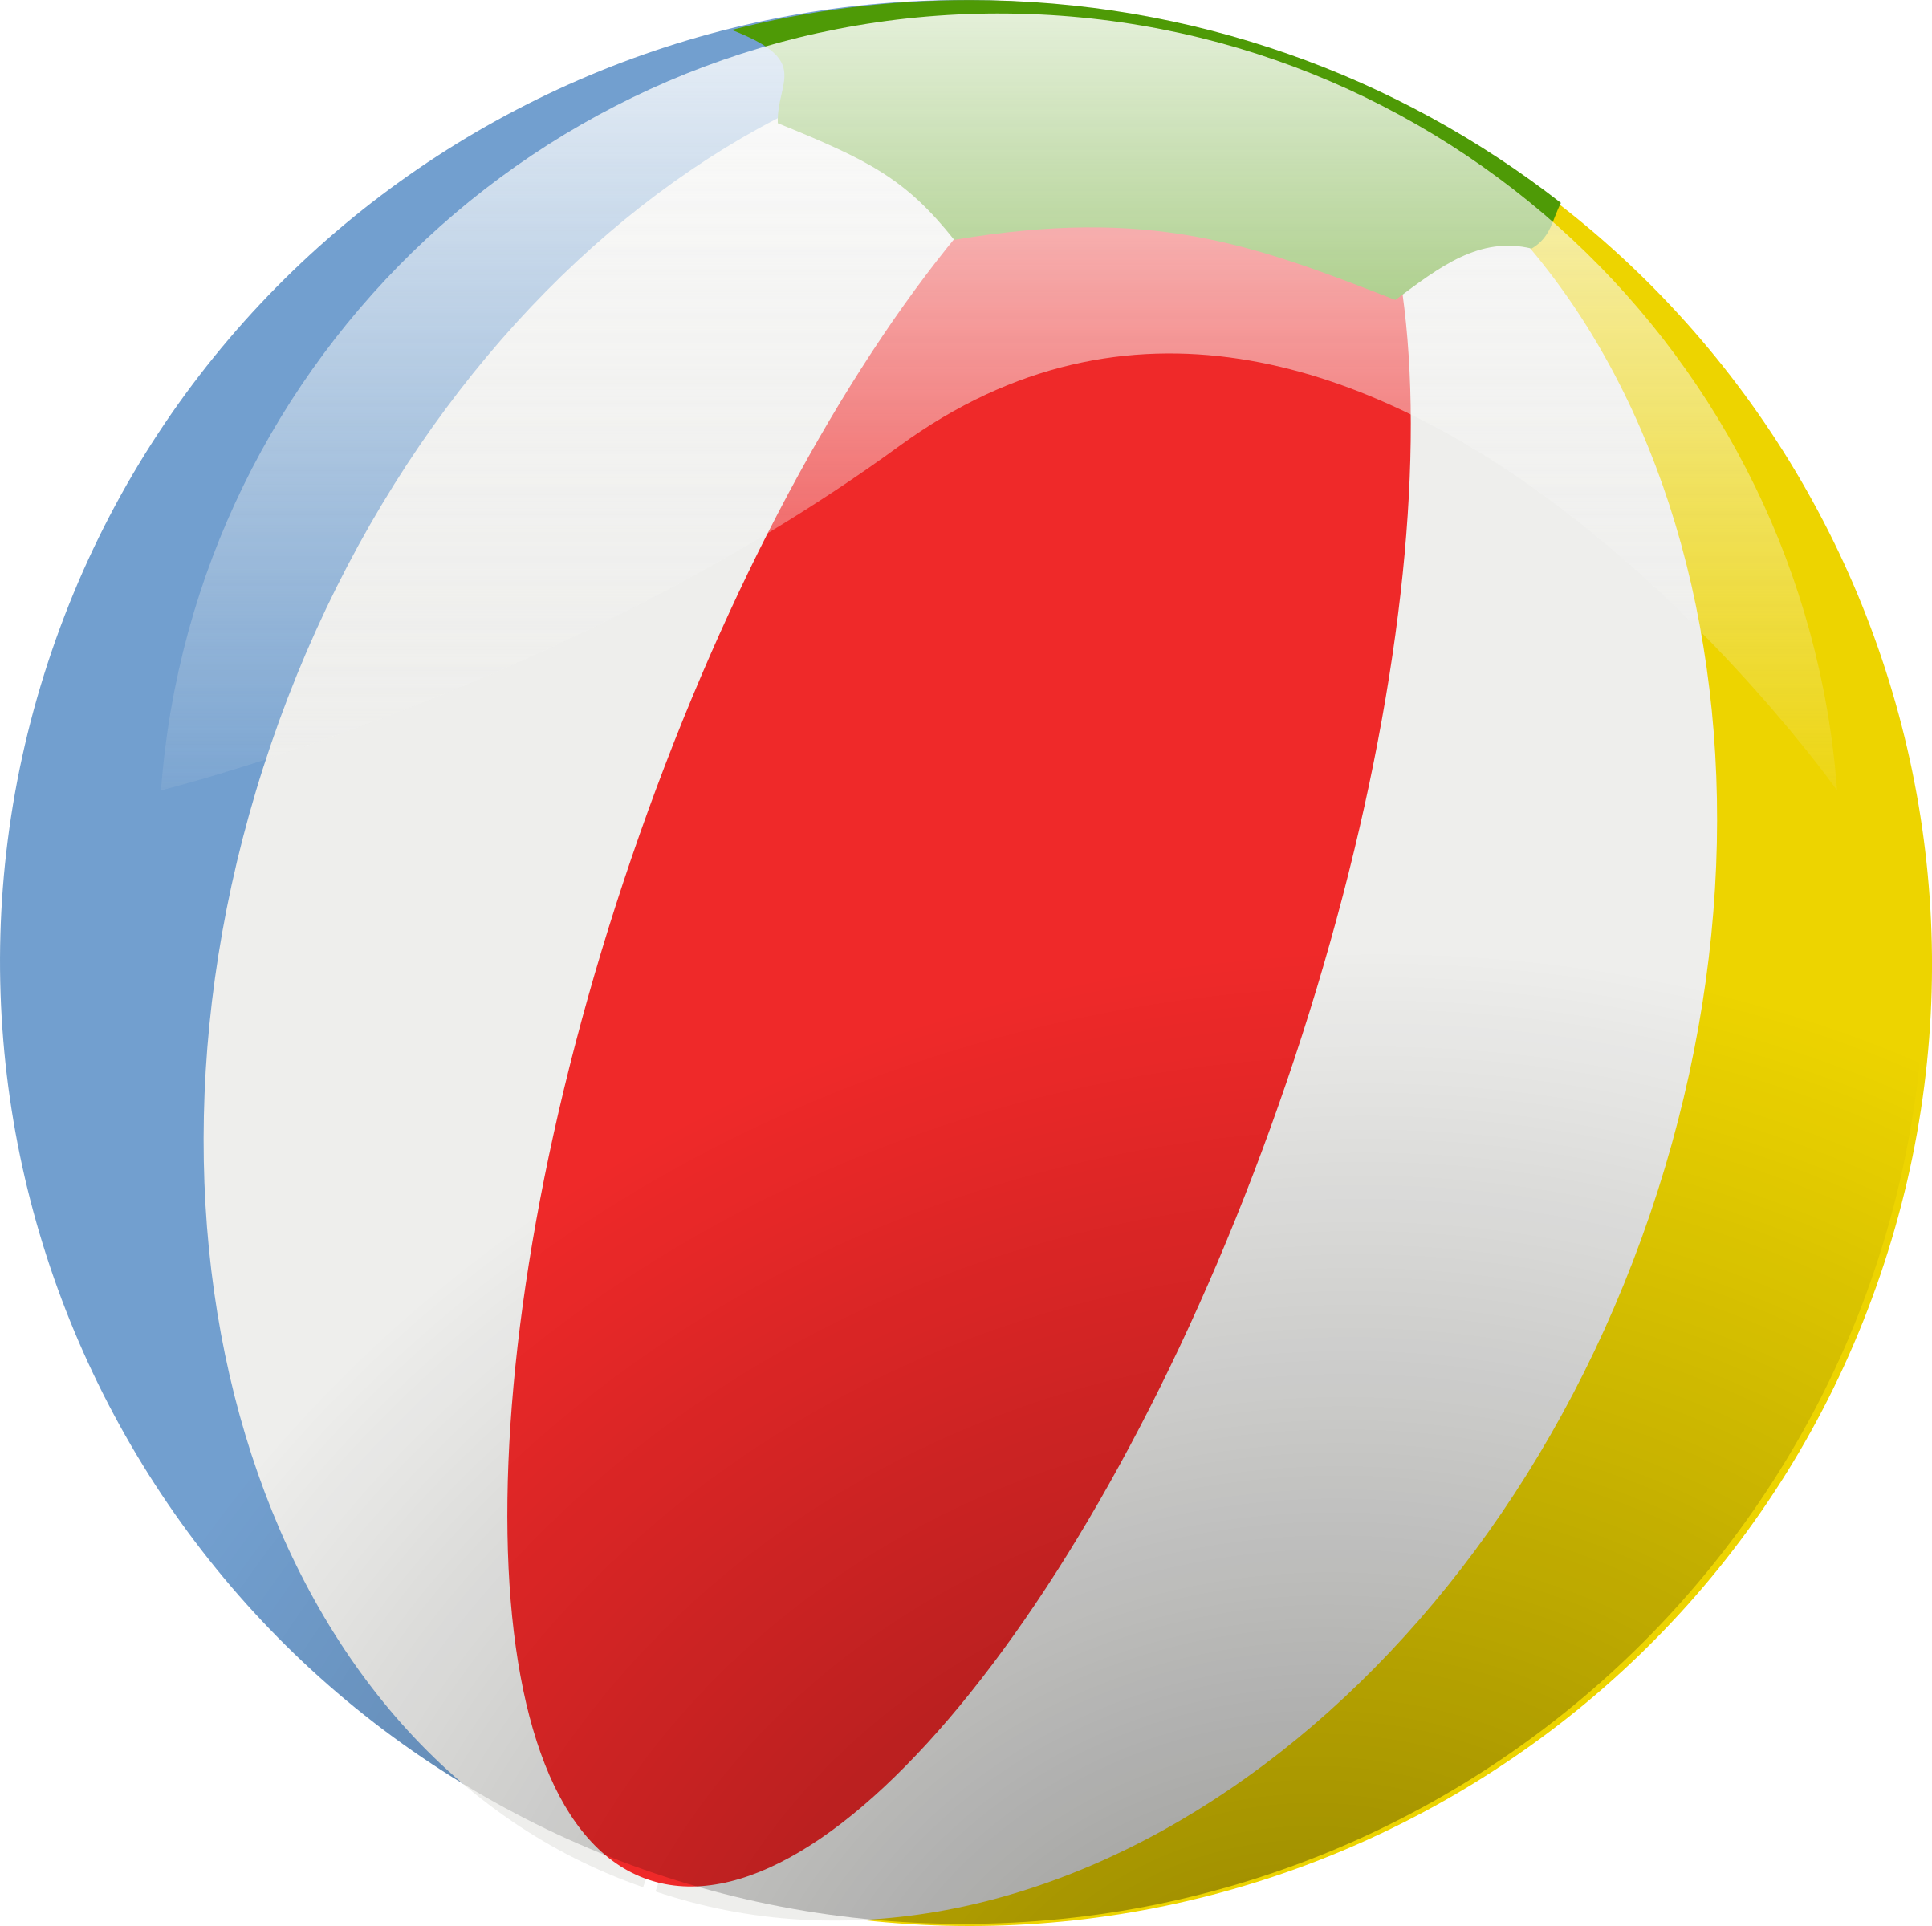 Beach ball free png. Balls clipart party